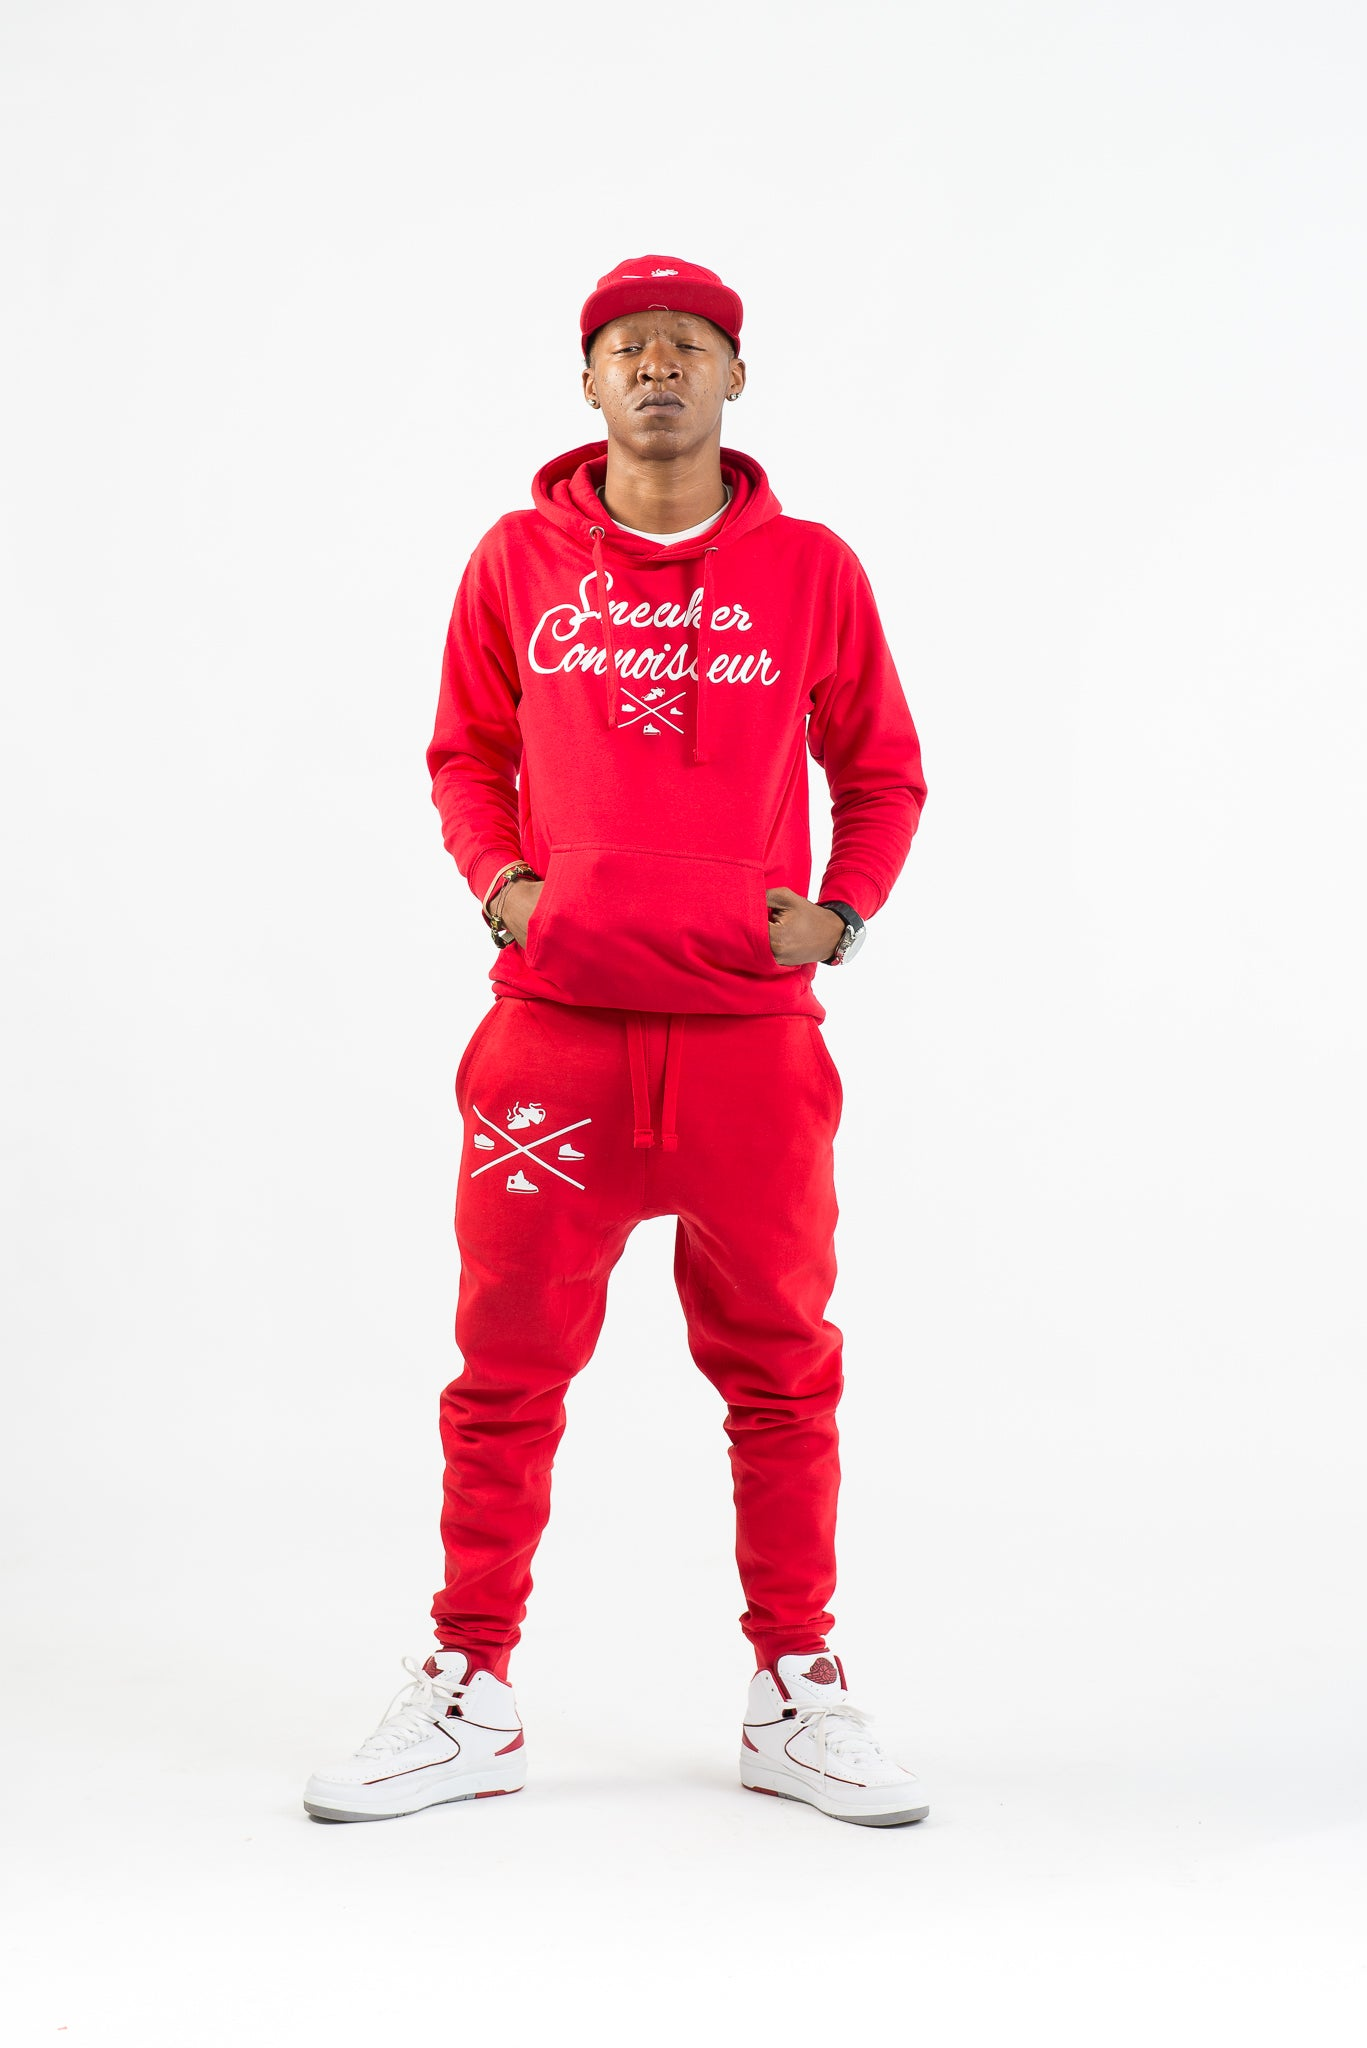 RED/WHITE SNEAKER CONNOISSEUR v2 JOGGER SUIT